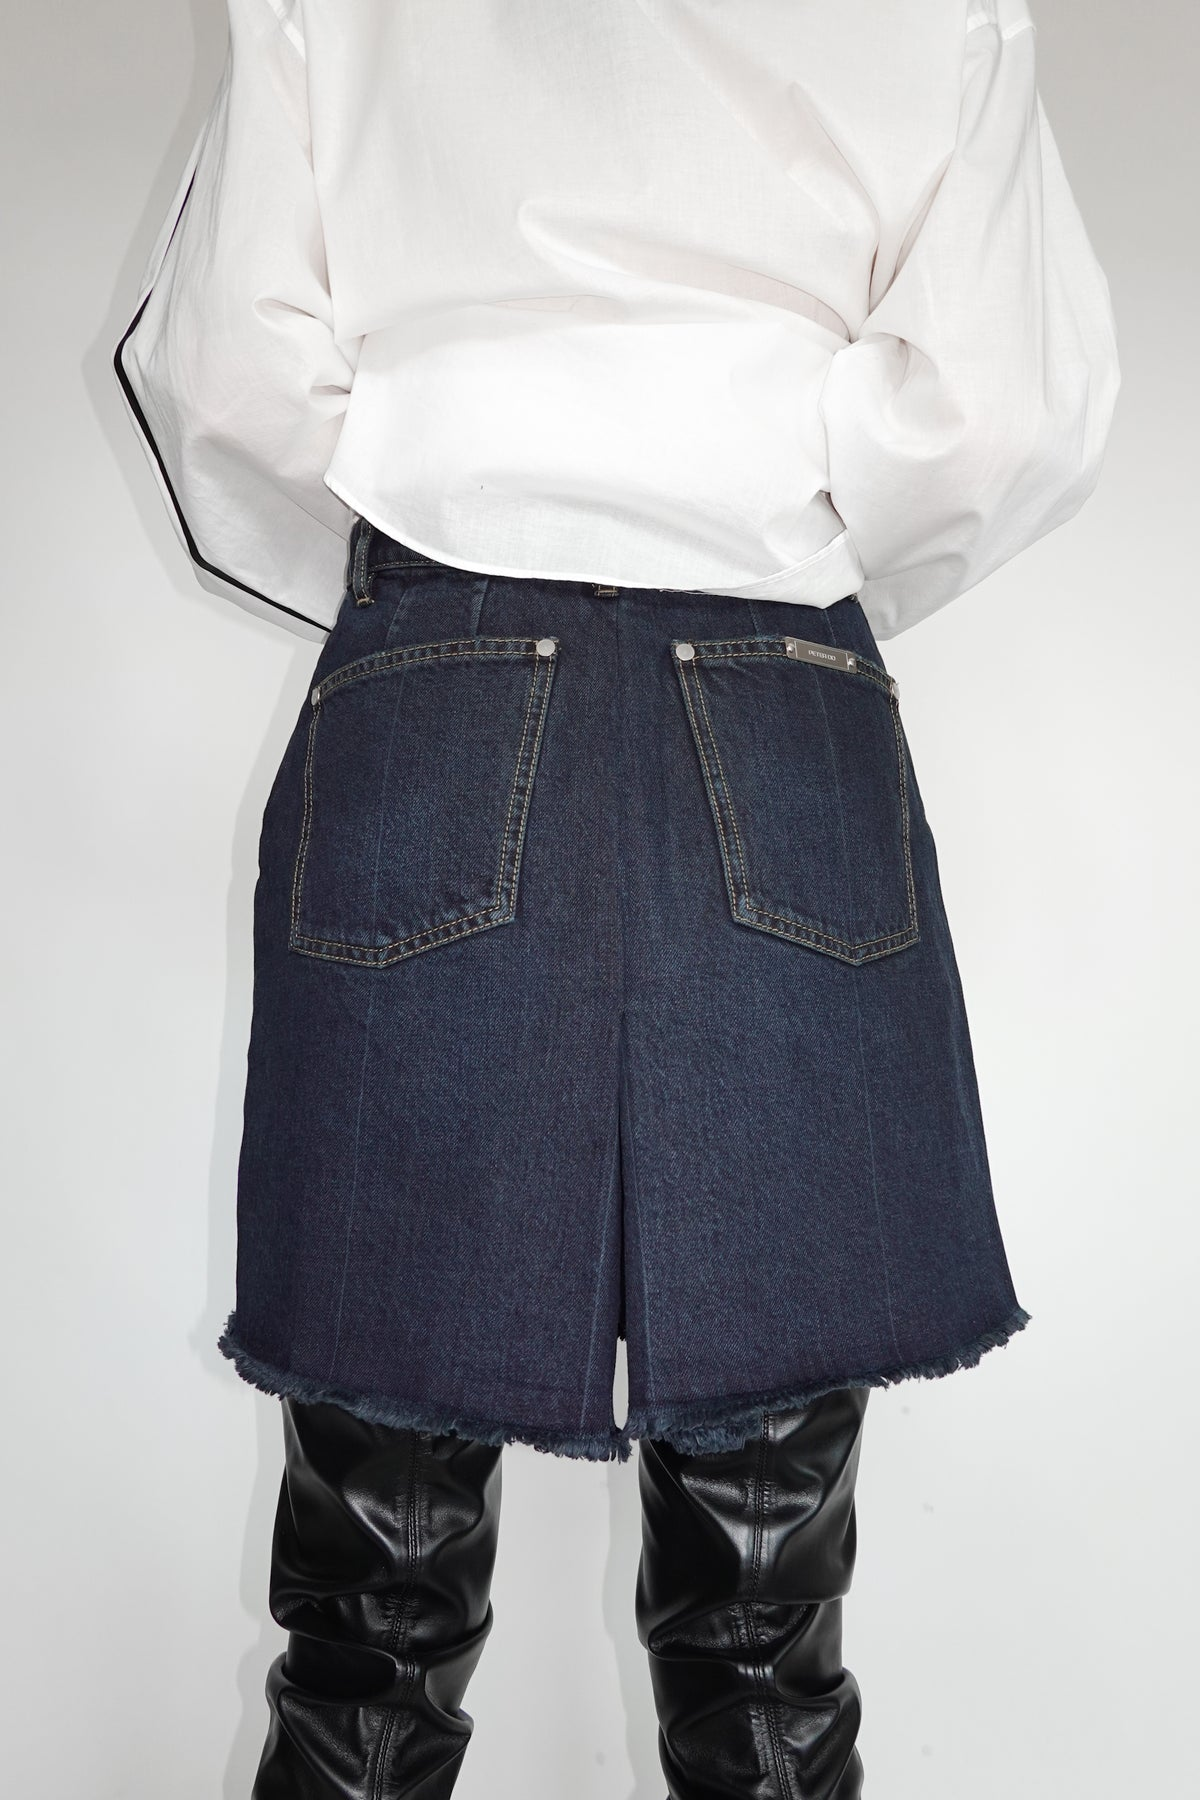 DARK INDIGO BLUE DENIM SKORT